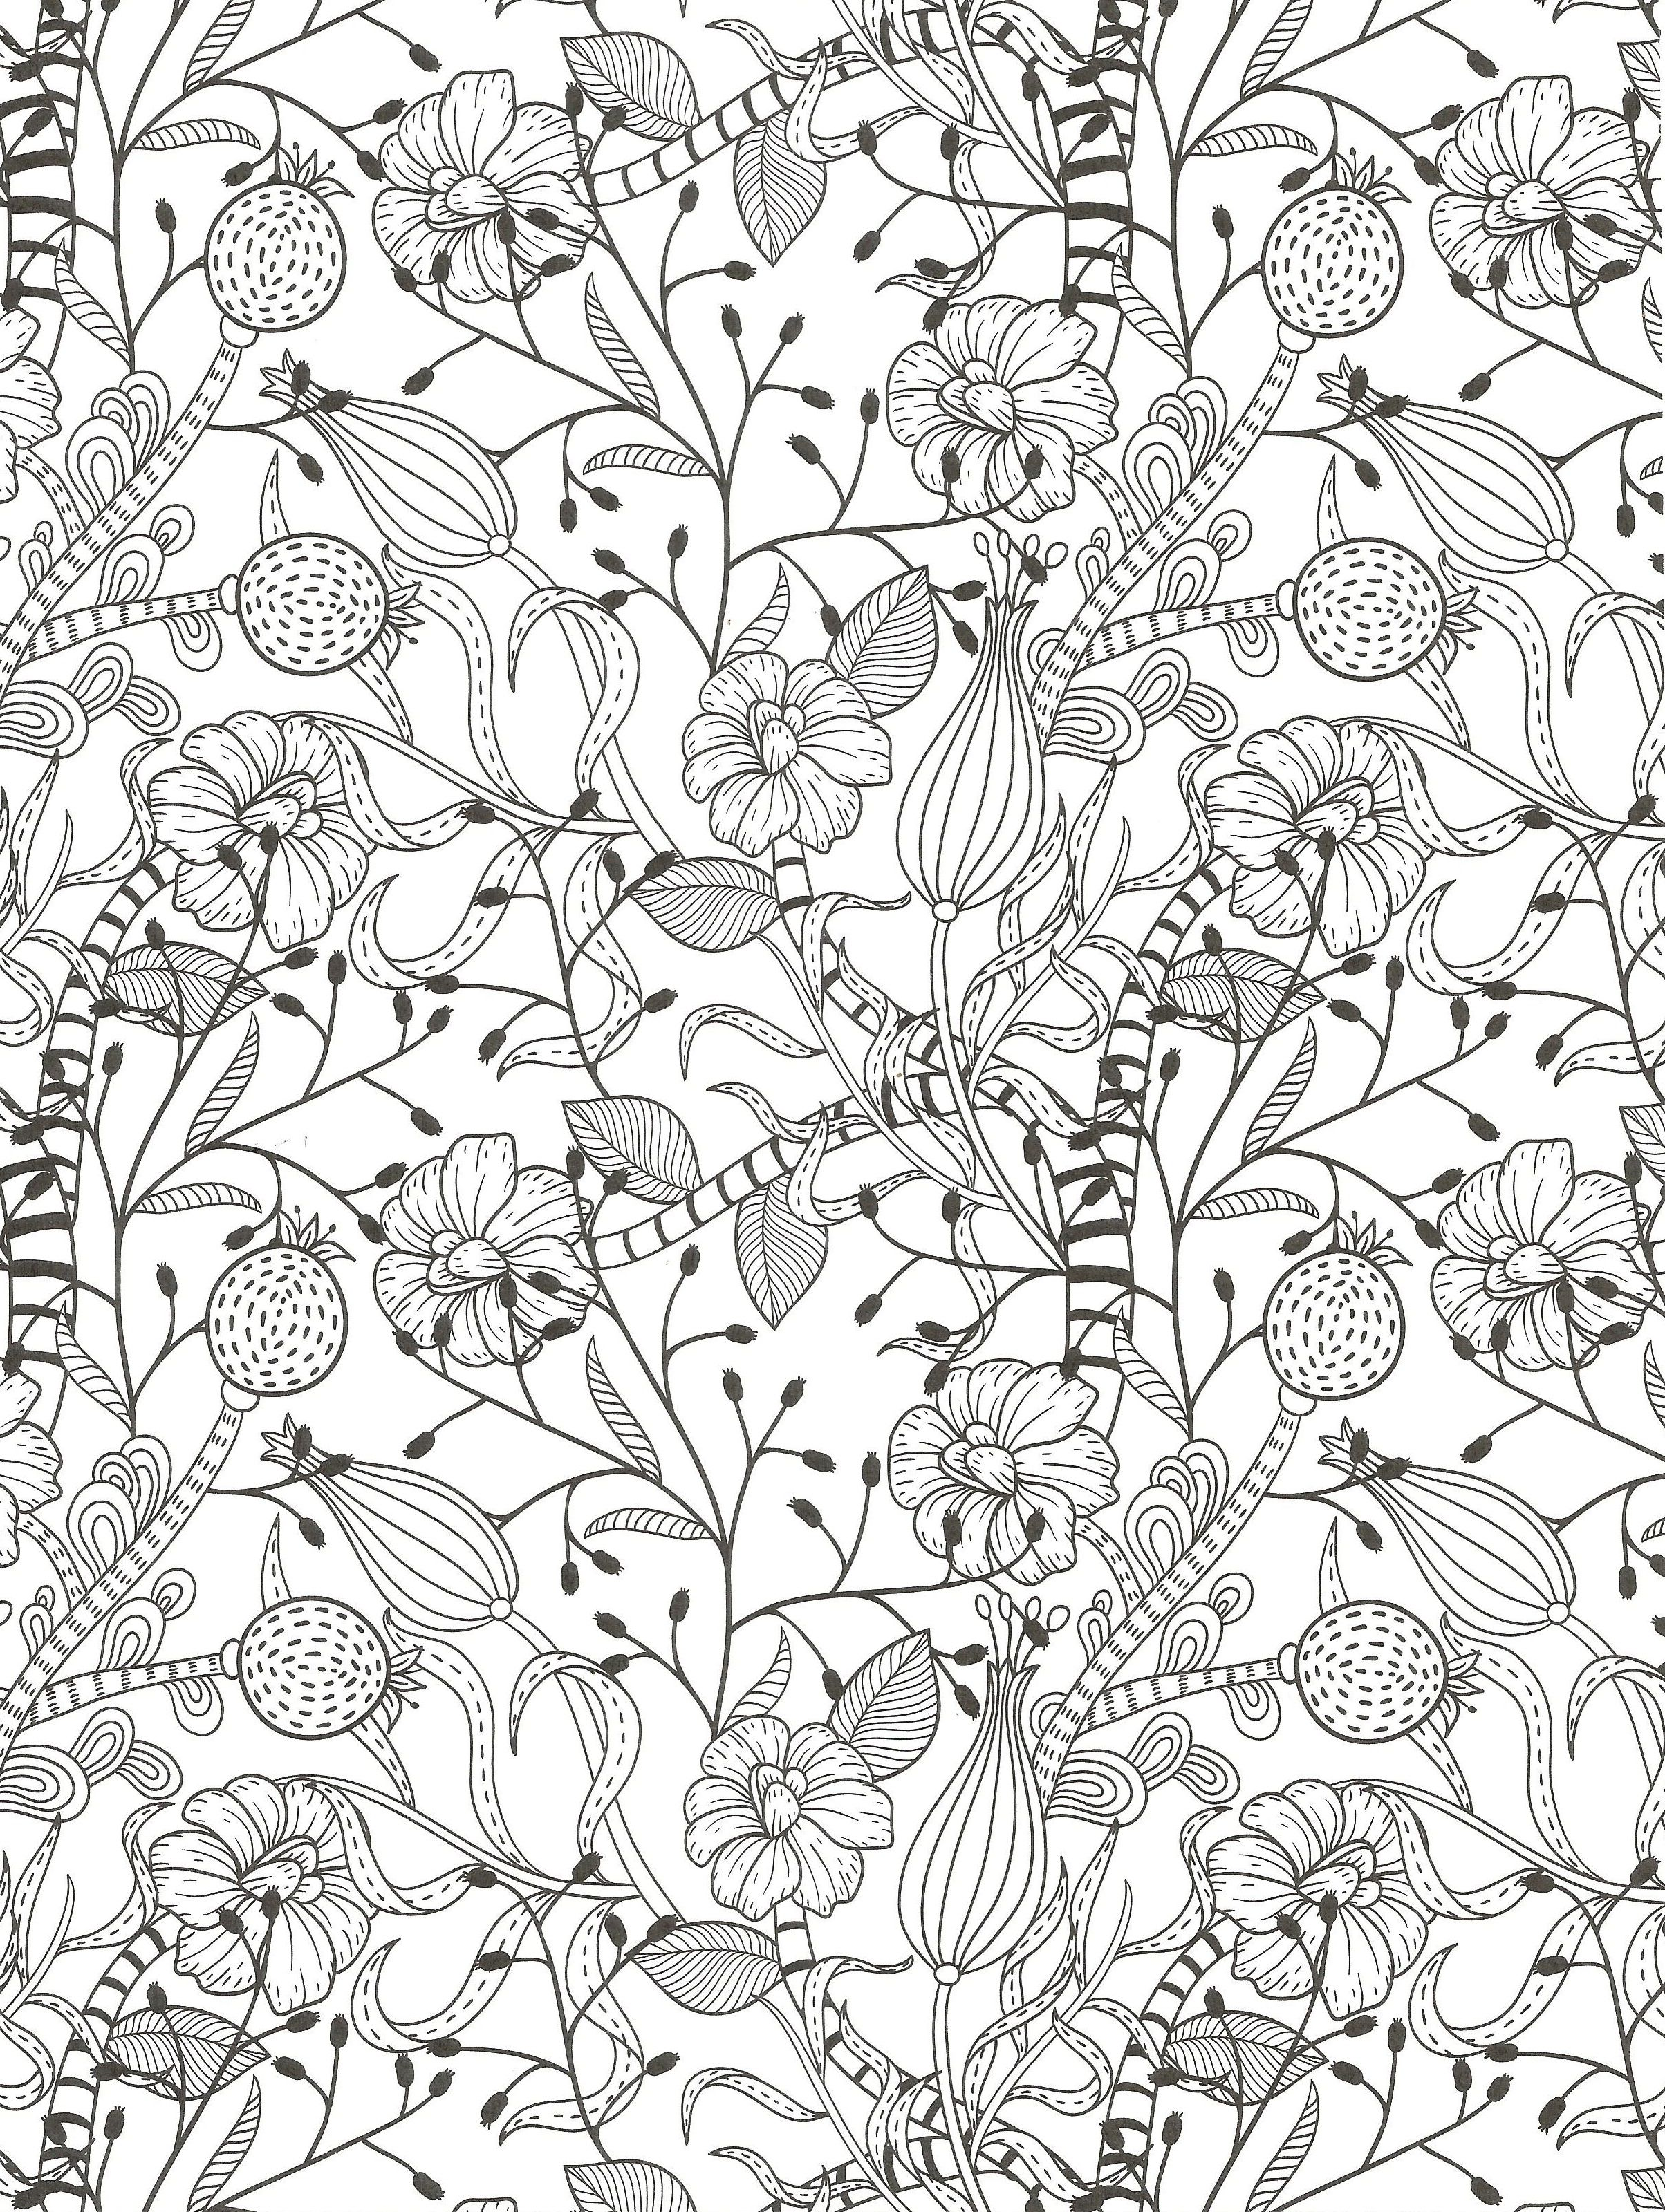 Coloring pages for donna flor - Floral Coloring Page For Adults